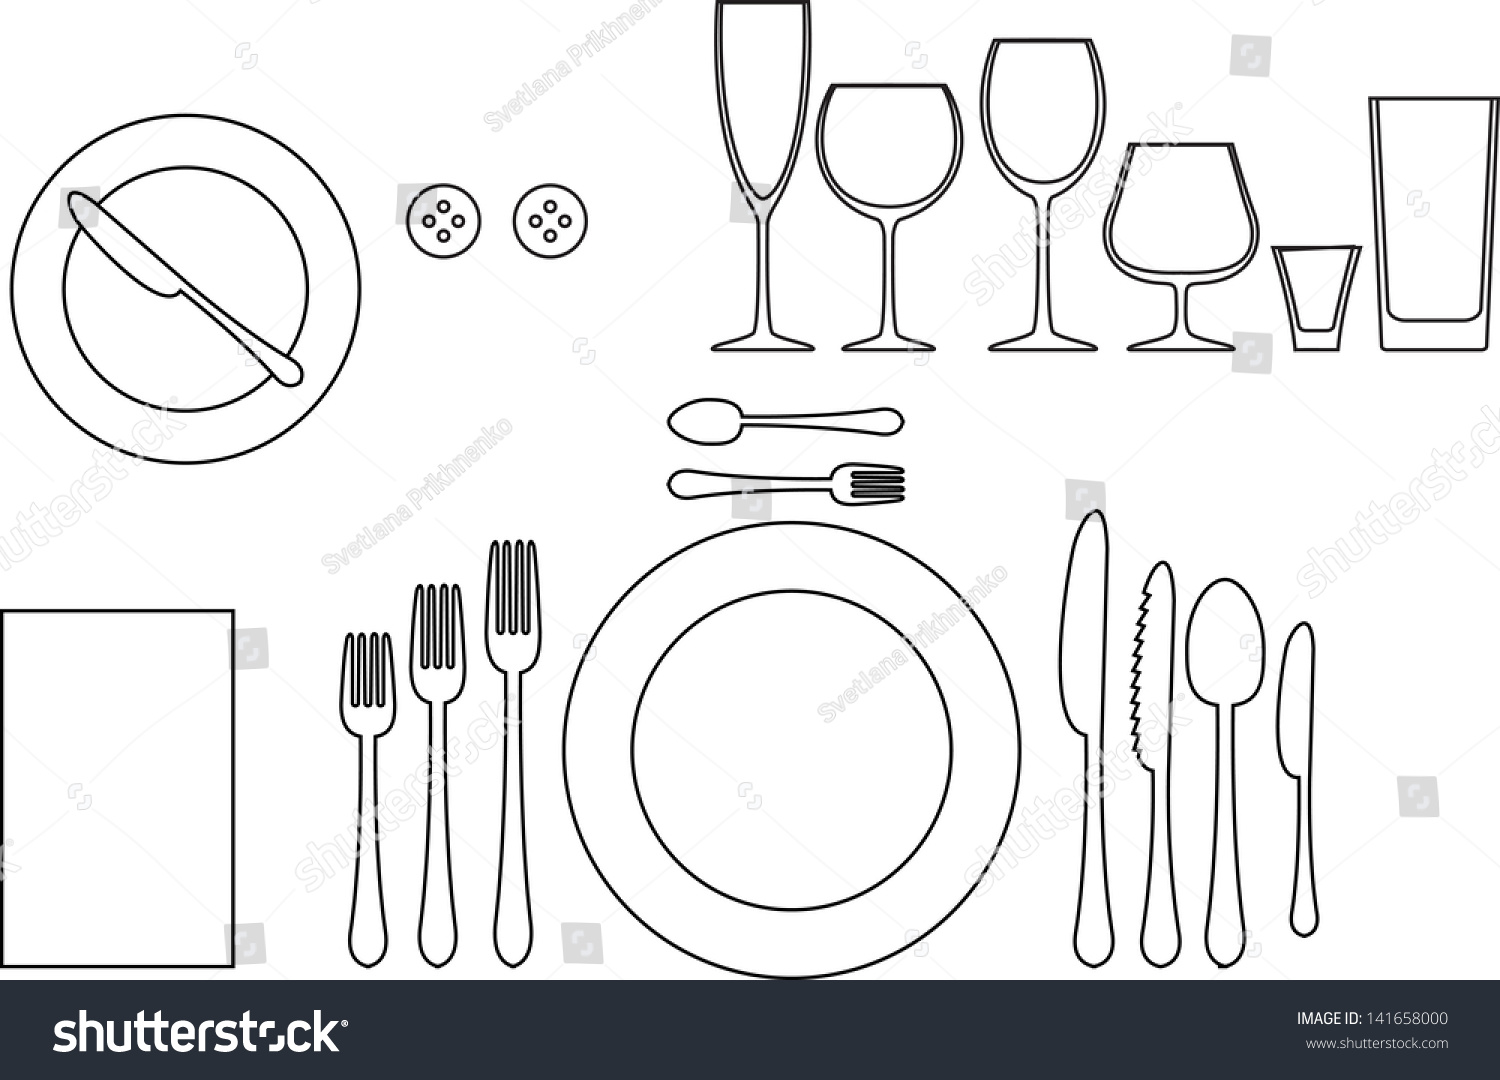 Proper table setting diagram diagram of a formal table setting - Outline Silhouette Of Tableware Etiquette Proper Table Setting